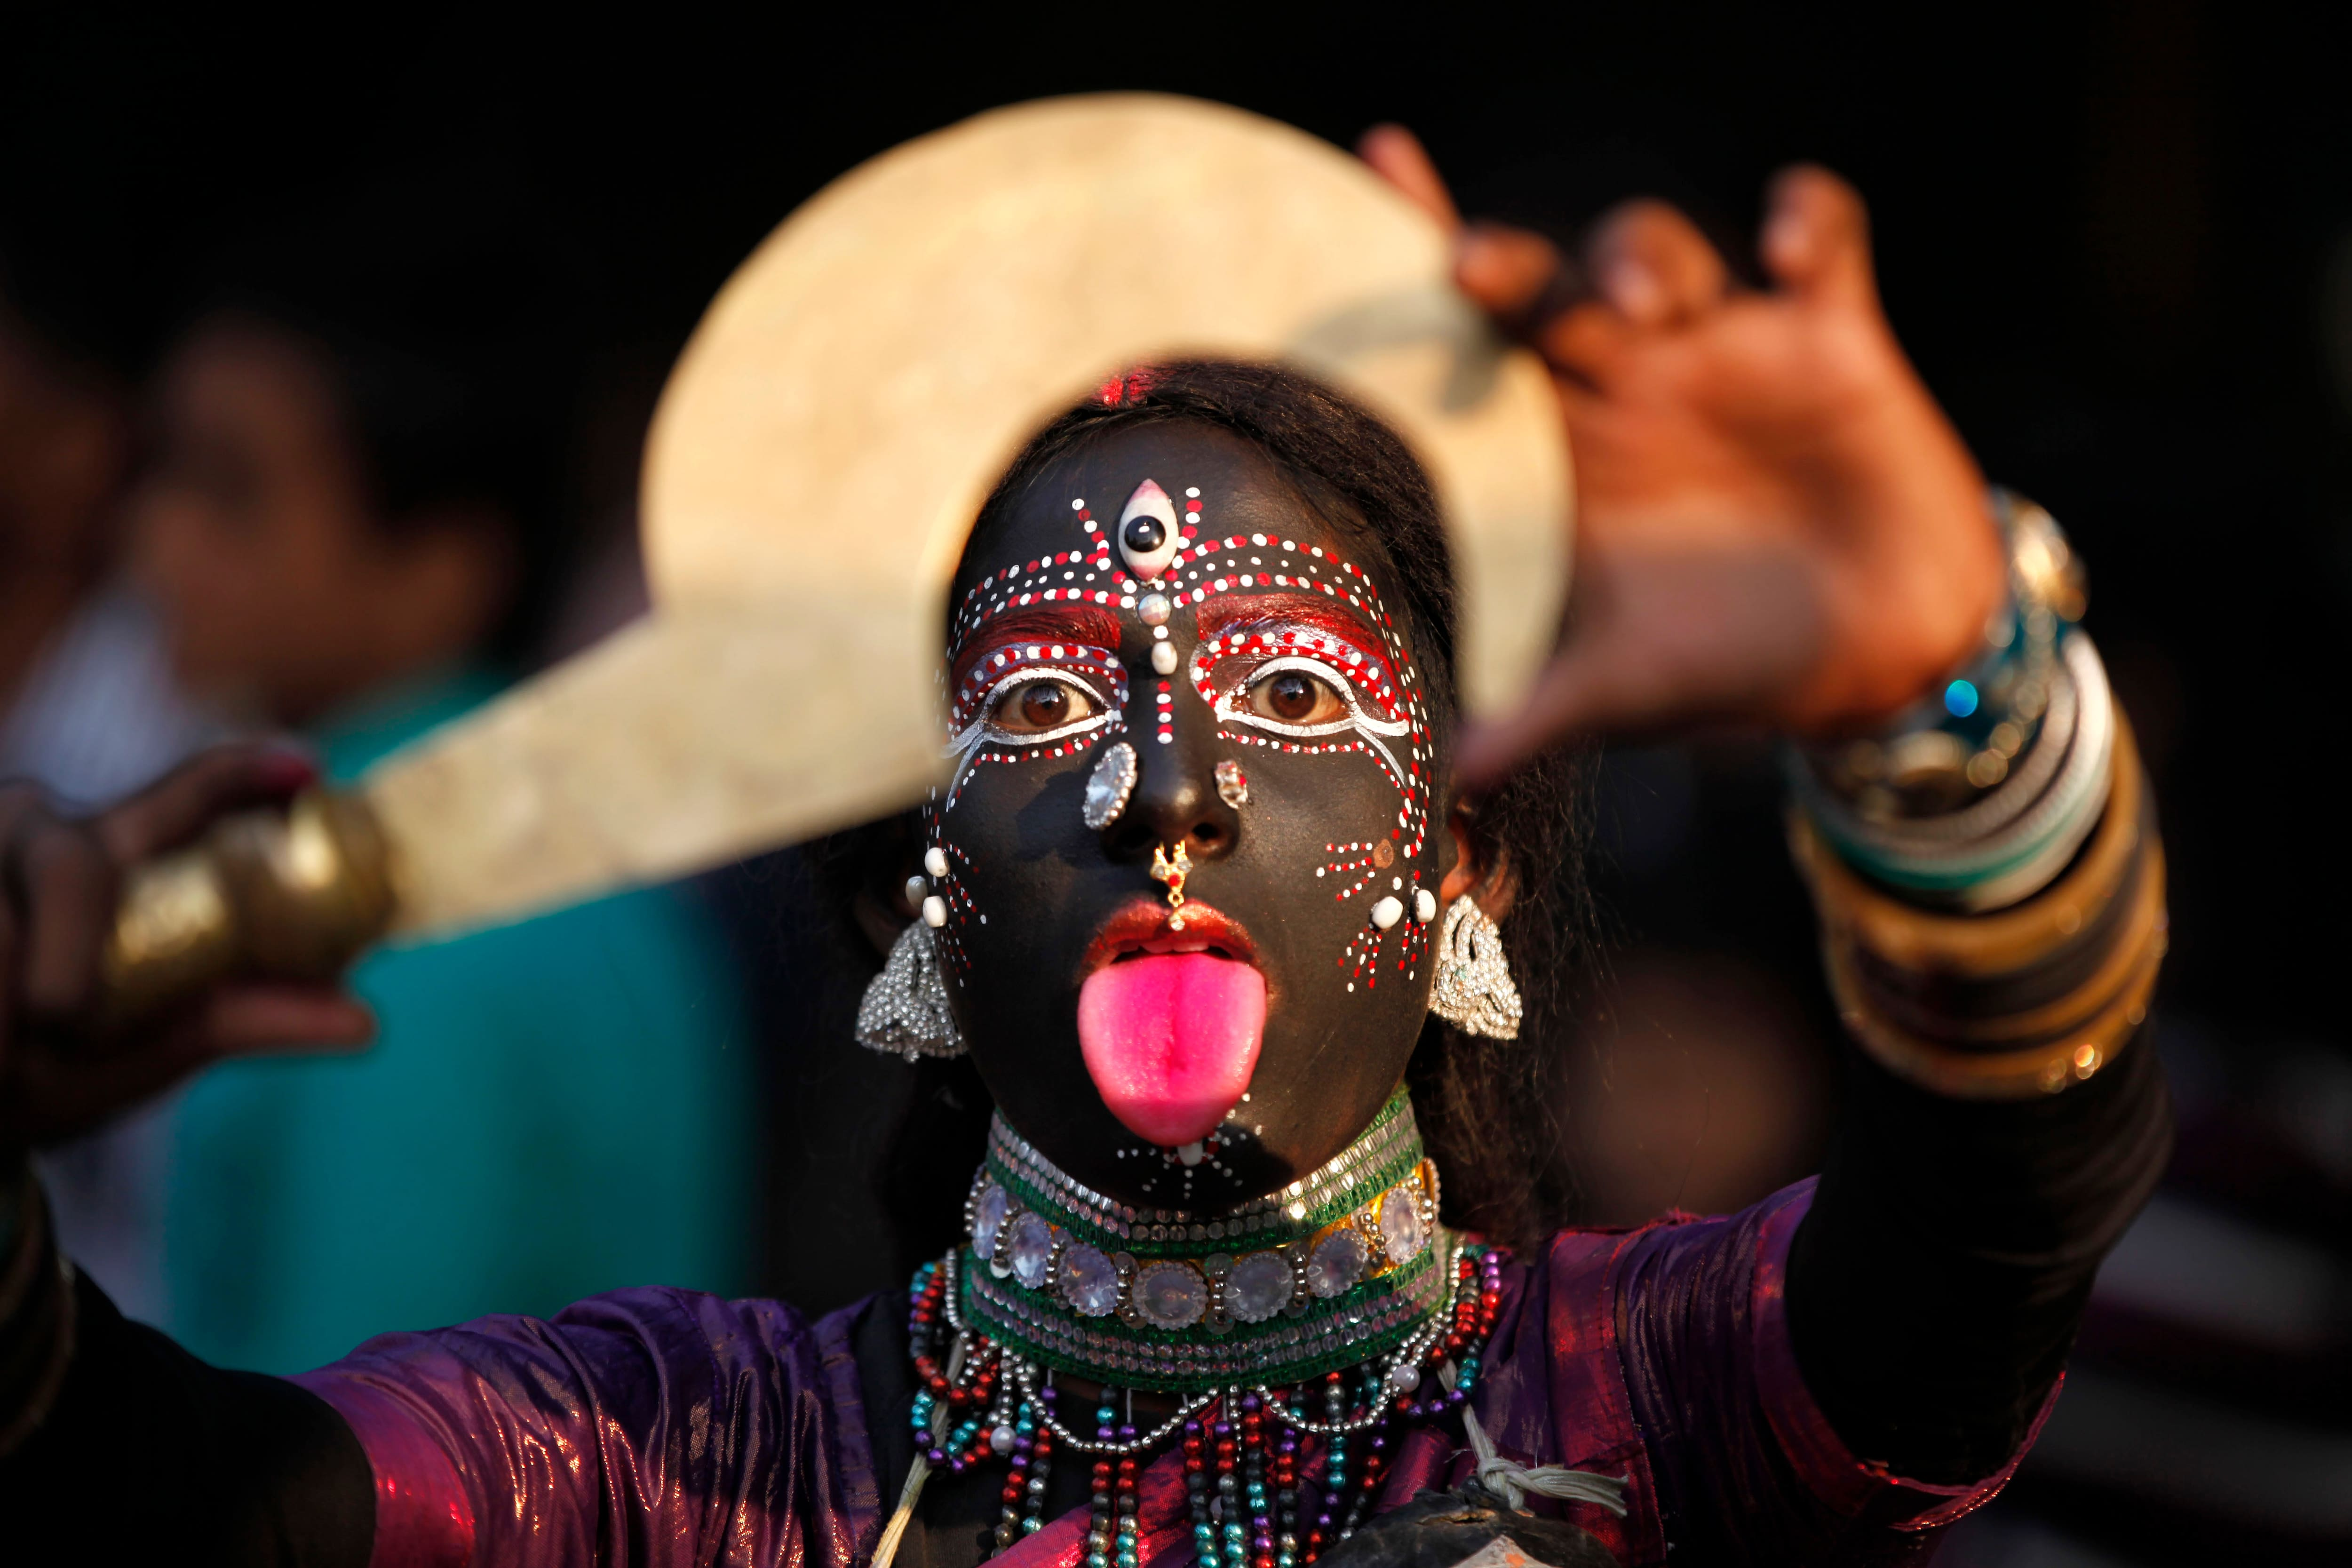 A folk artist from India's northern Uttar Pradesh state performs during a procession held as part of the ongoing all India multilingual short play, folk dance competition and theatre seminar in Allahabad.